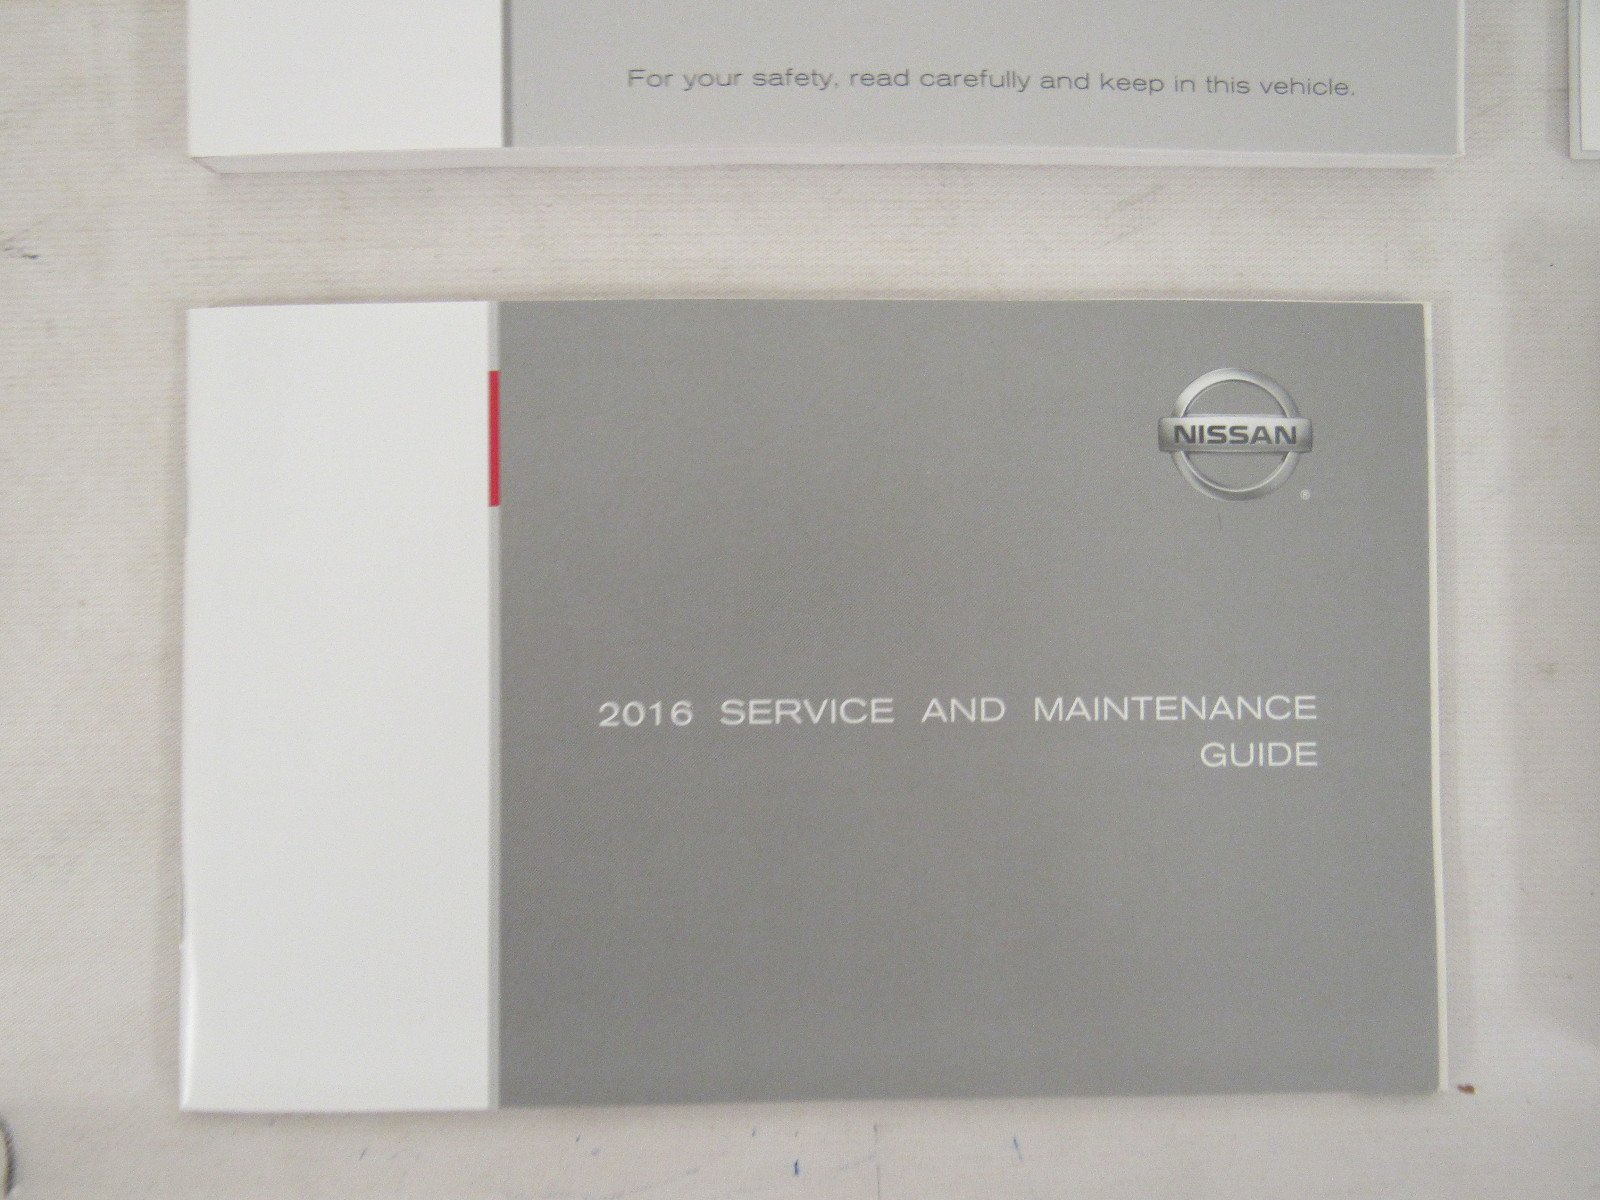 Amazon.com: 2016 Nissan Maxima Owners Manual Guide Book: Books